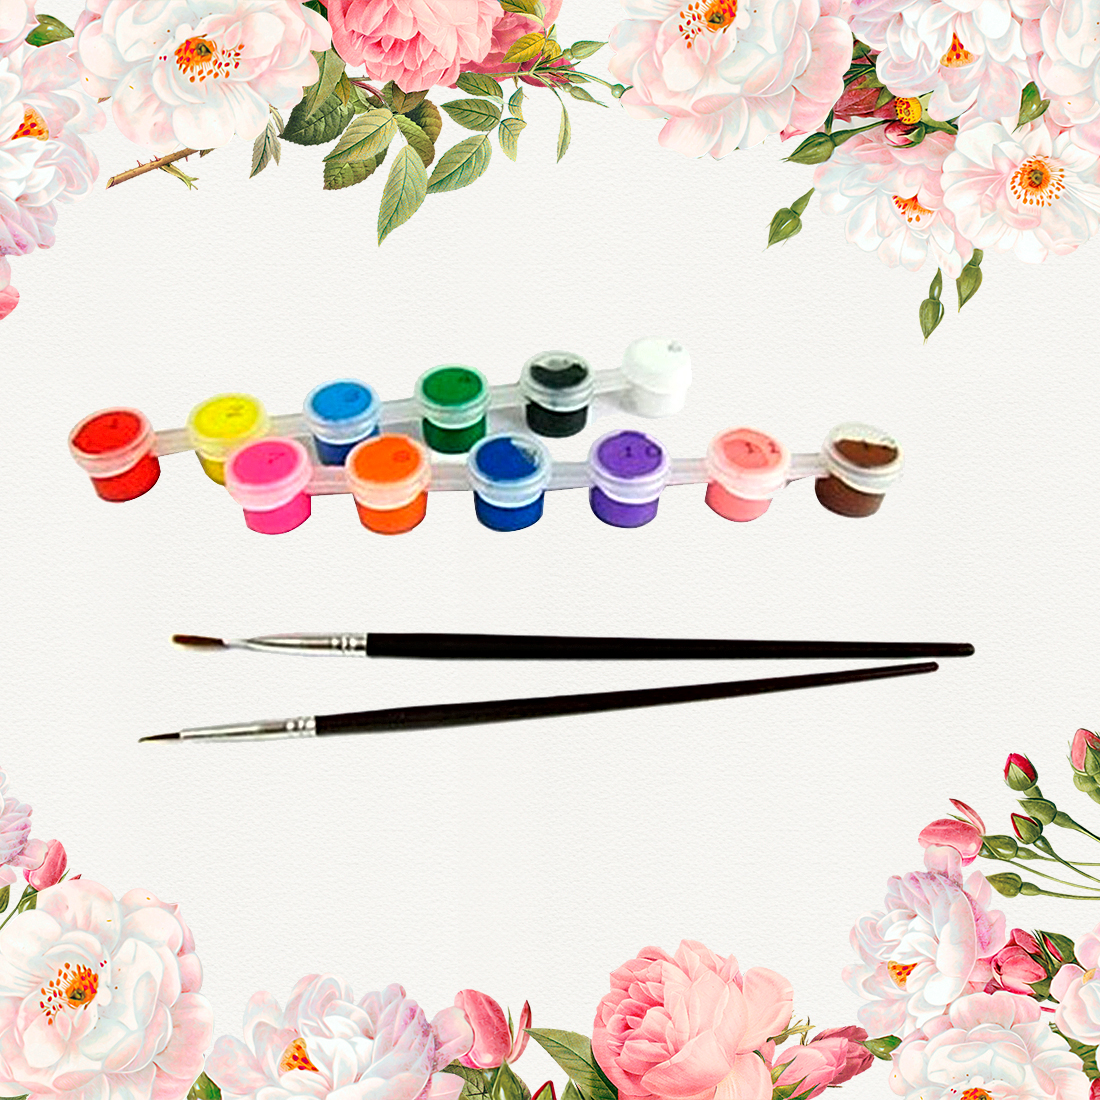 FangNymph Hot Sale 12 Colors With 2 Paint Blue Brushes Per Set Acrylic Paints For Oil Painting Nail Art Clothes Art Digital